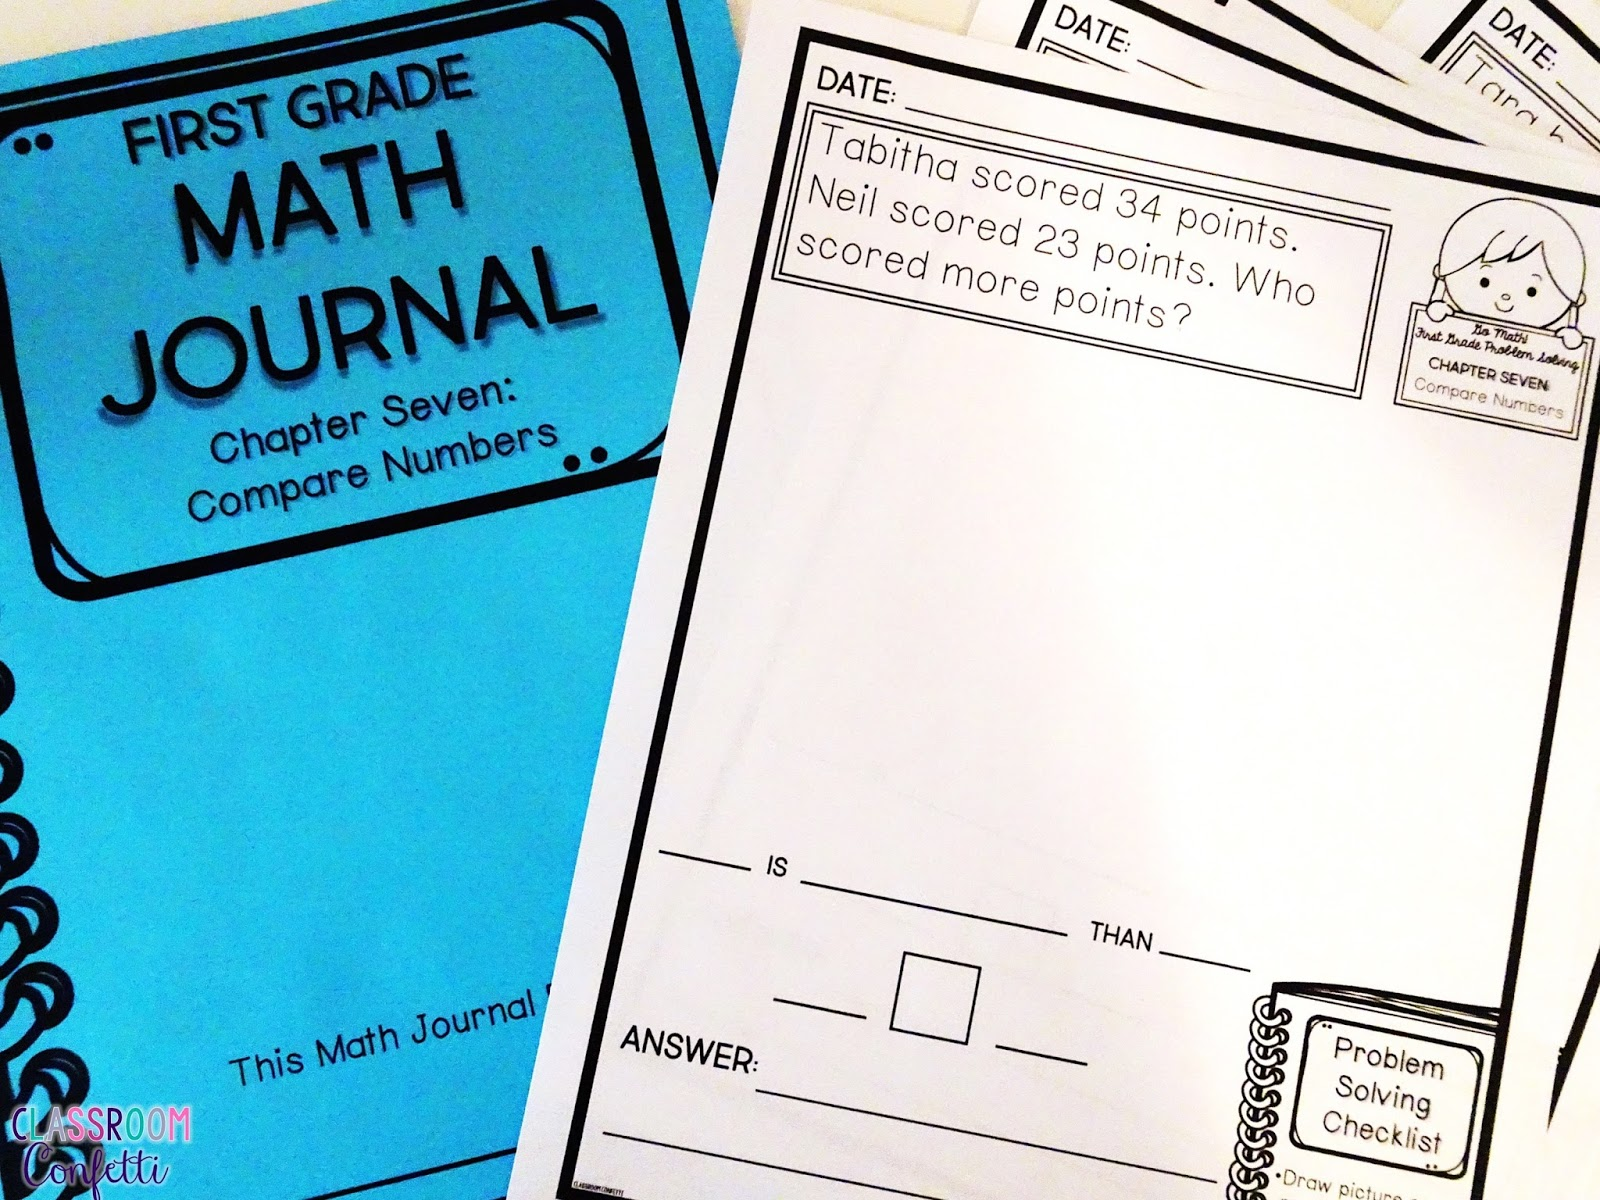 Classroom Design Journal Articles ~ Go math journals for first grade classroom confetti